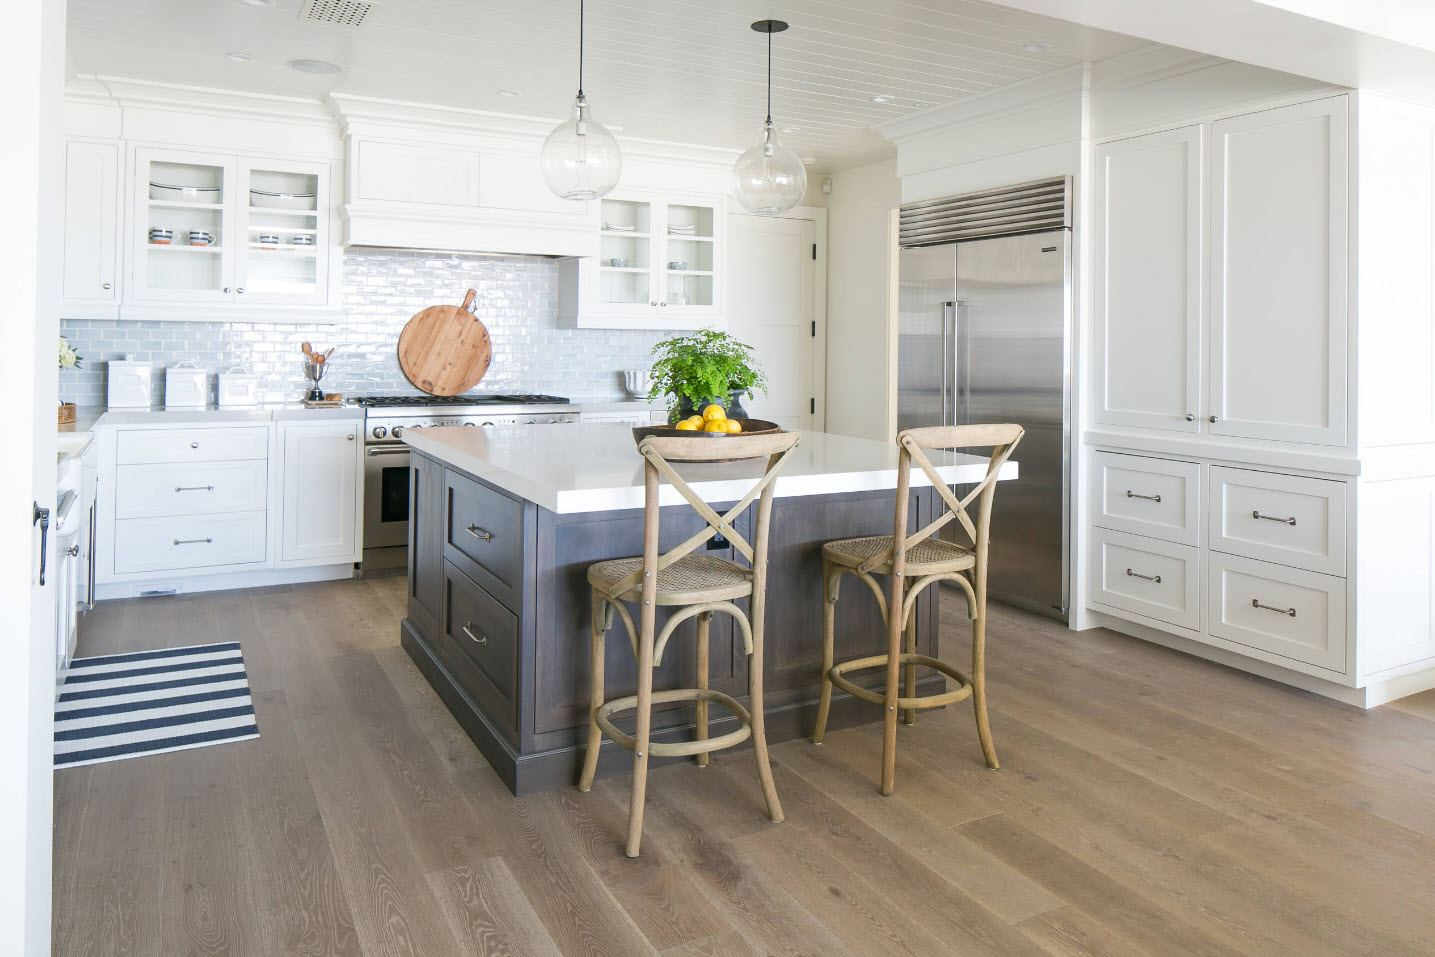 120 Square Feet Kitchen Interior Design Ideas with Photos. Light parquet in the classic styled space